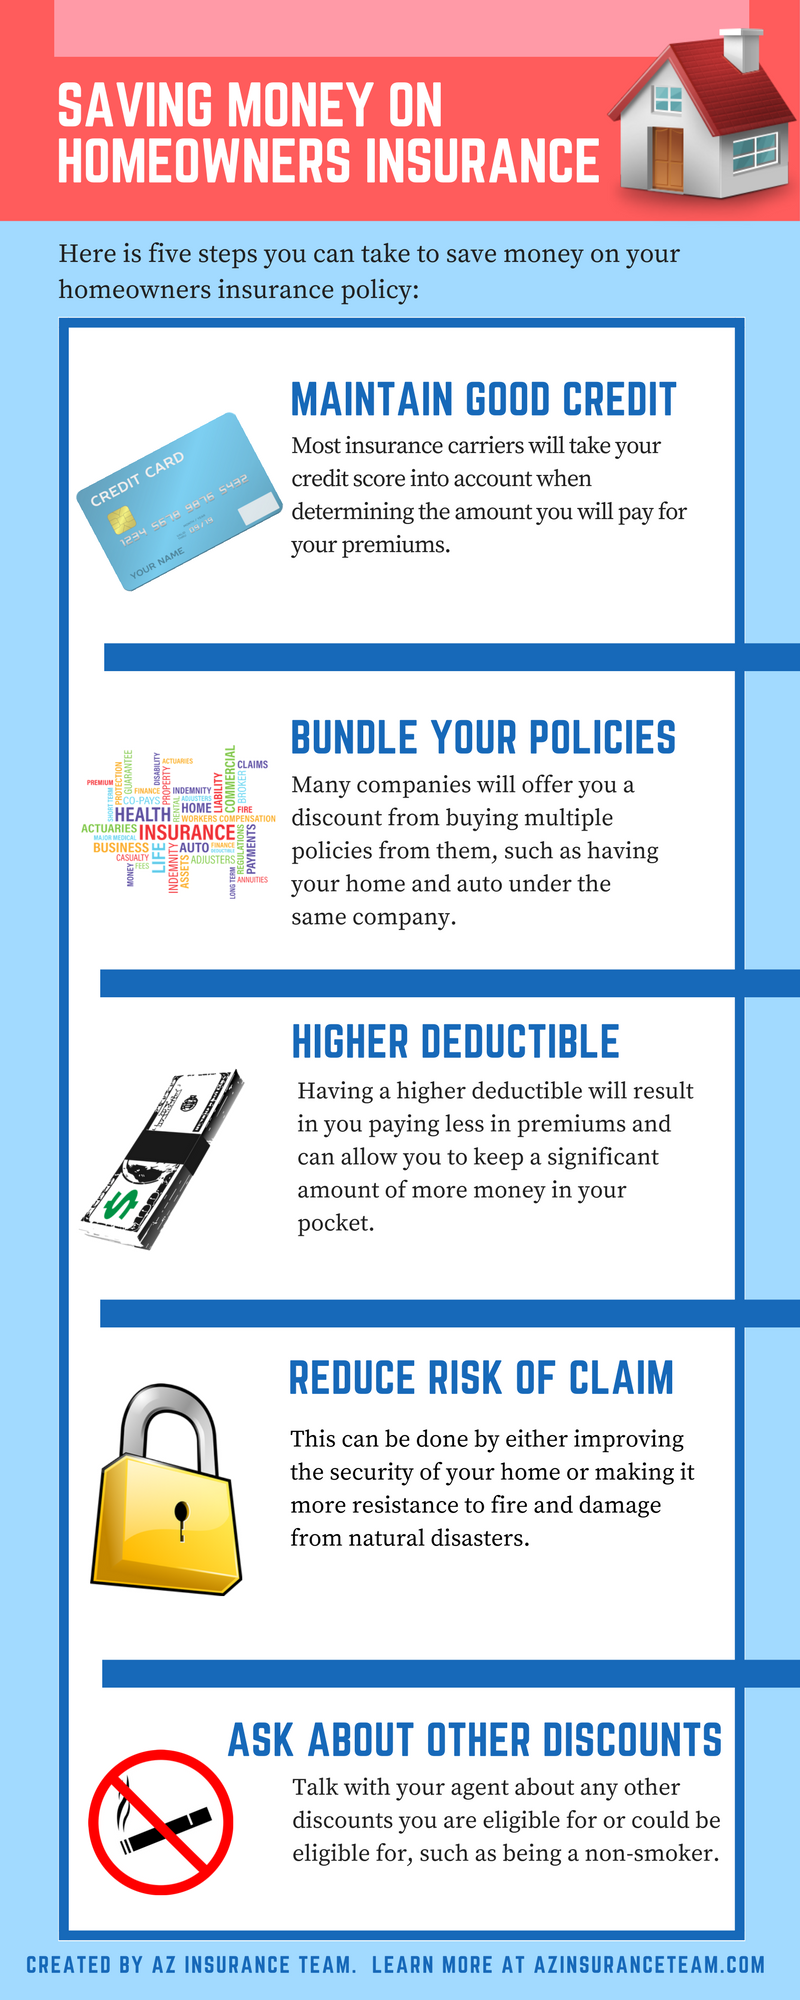 Check Out Our Blog Post And Infographic Explain Several Ways To Save Money On Your Homeowners Insurance Full Blo Homeowners Insurance Saving Money Good Credit